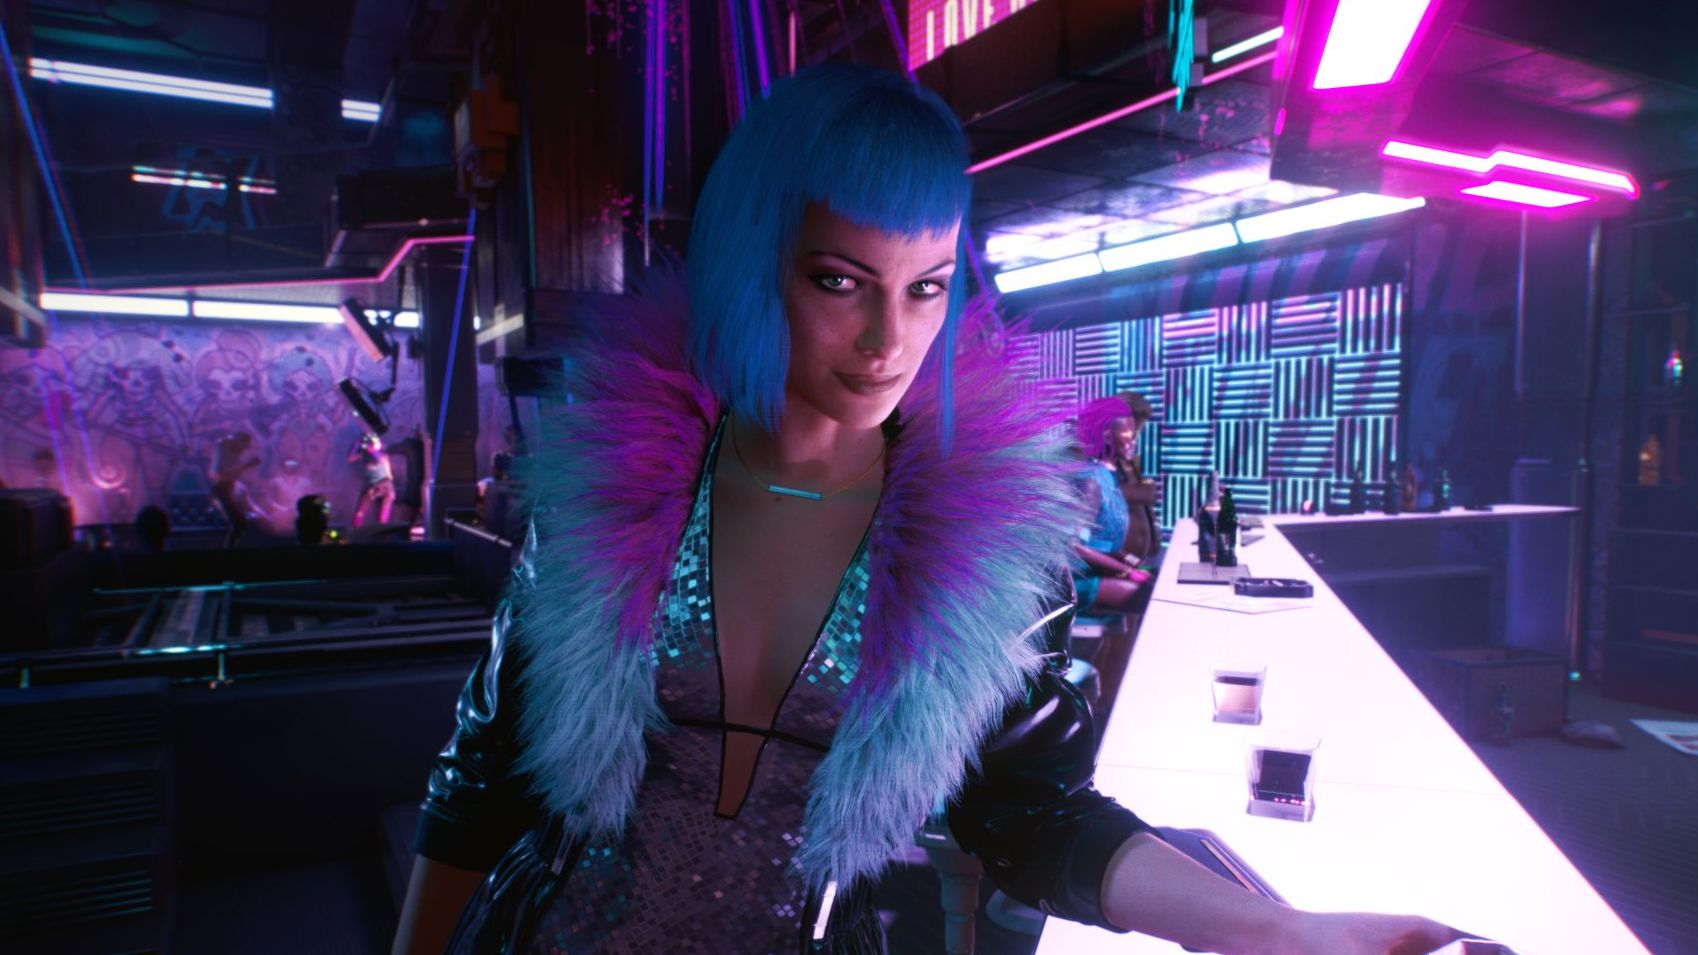 A screenshot from Cyberpunk 2077 of an elegant woman dressed for a night out. She is standing at a bar, the room behind her is lit in pink and blue. She is wearing a silver sequin dress with a deep vee cut down the front, and a jacket with a blue and purple fur collar